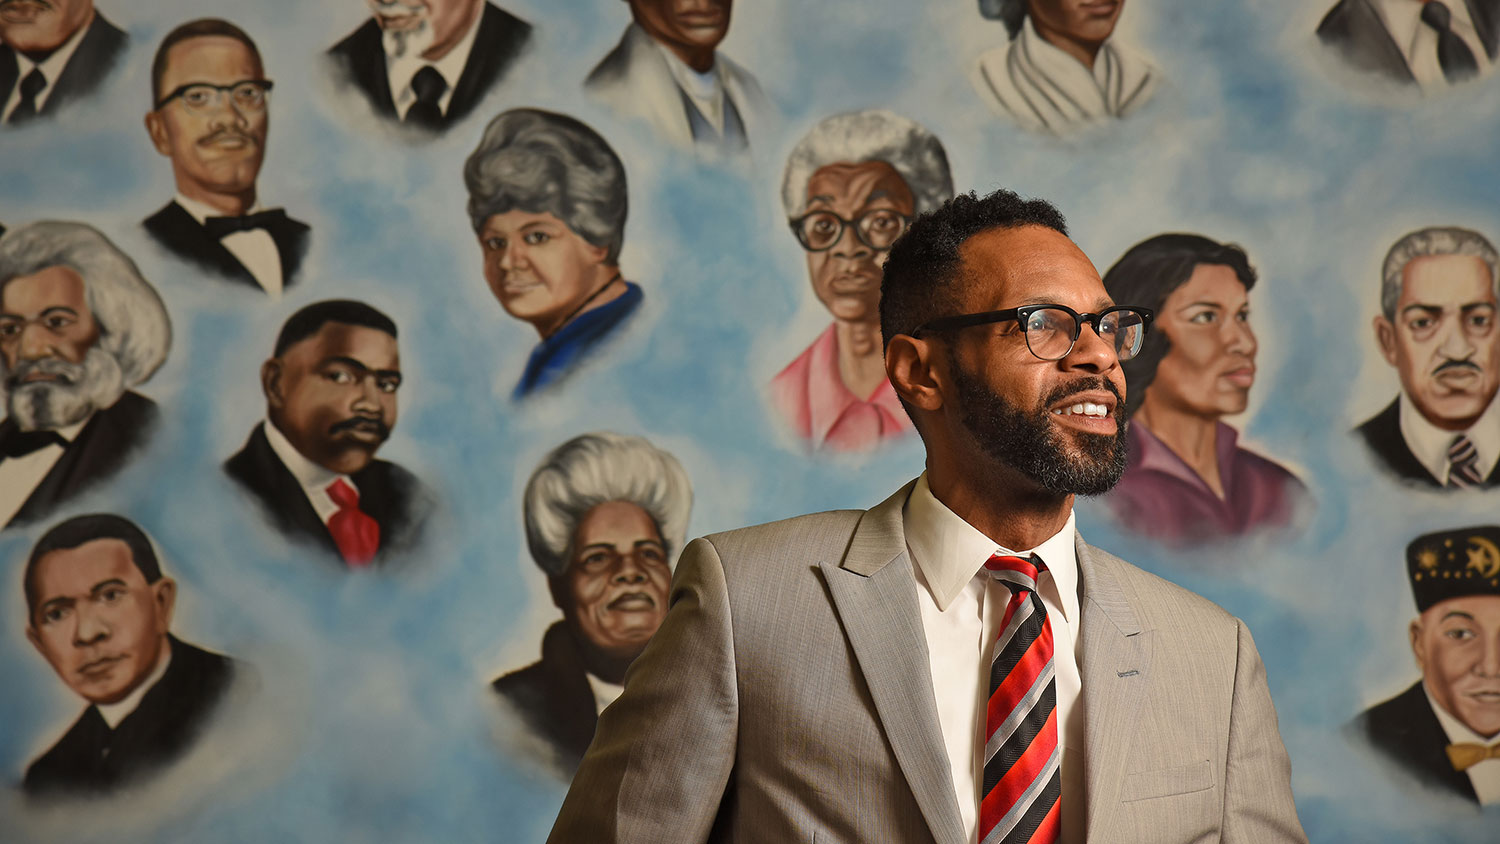 Moses T. Alexander Greene standing against a mural with pictures of black historical figures.